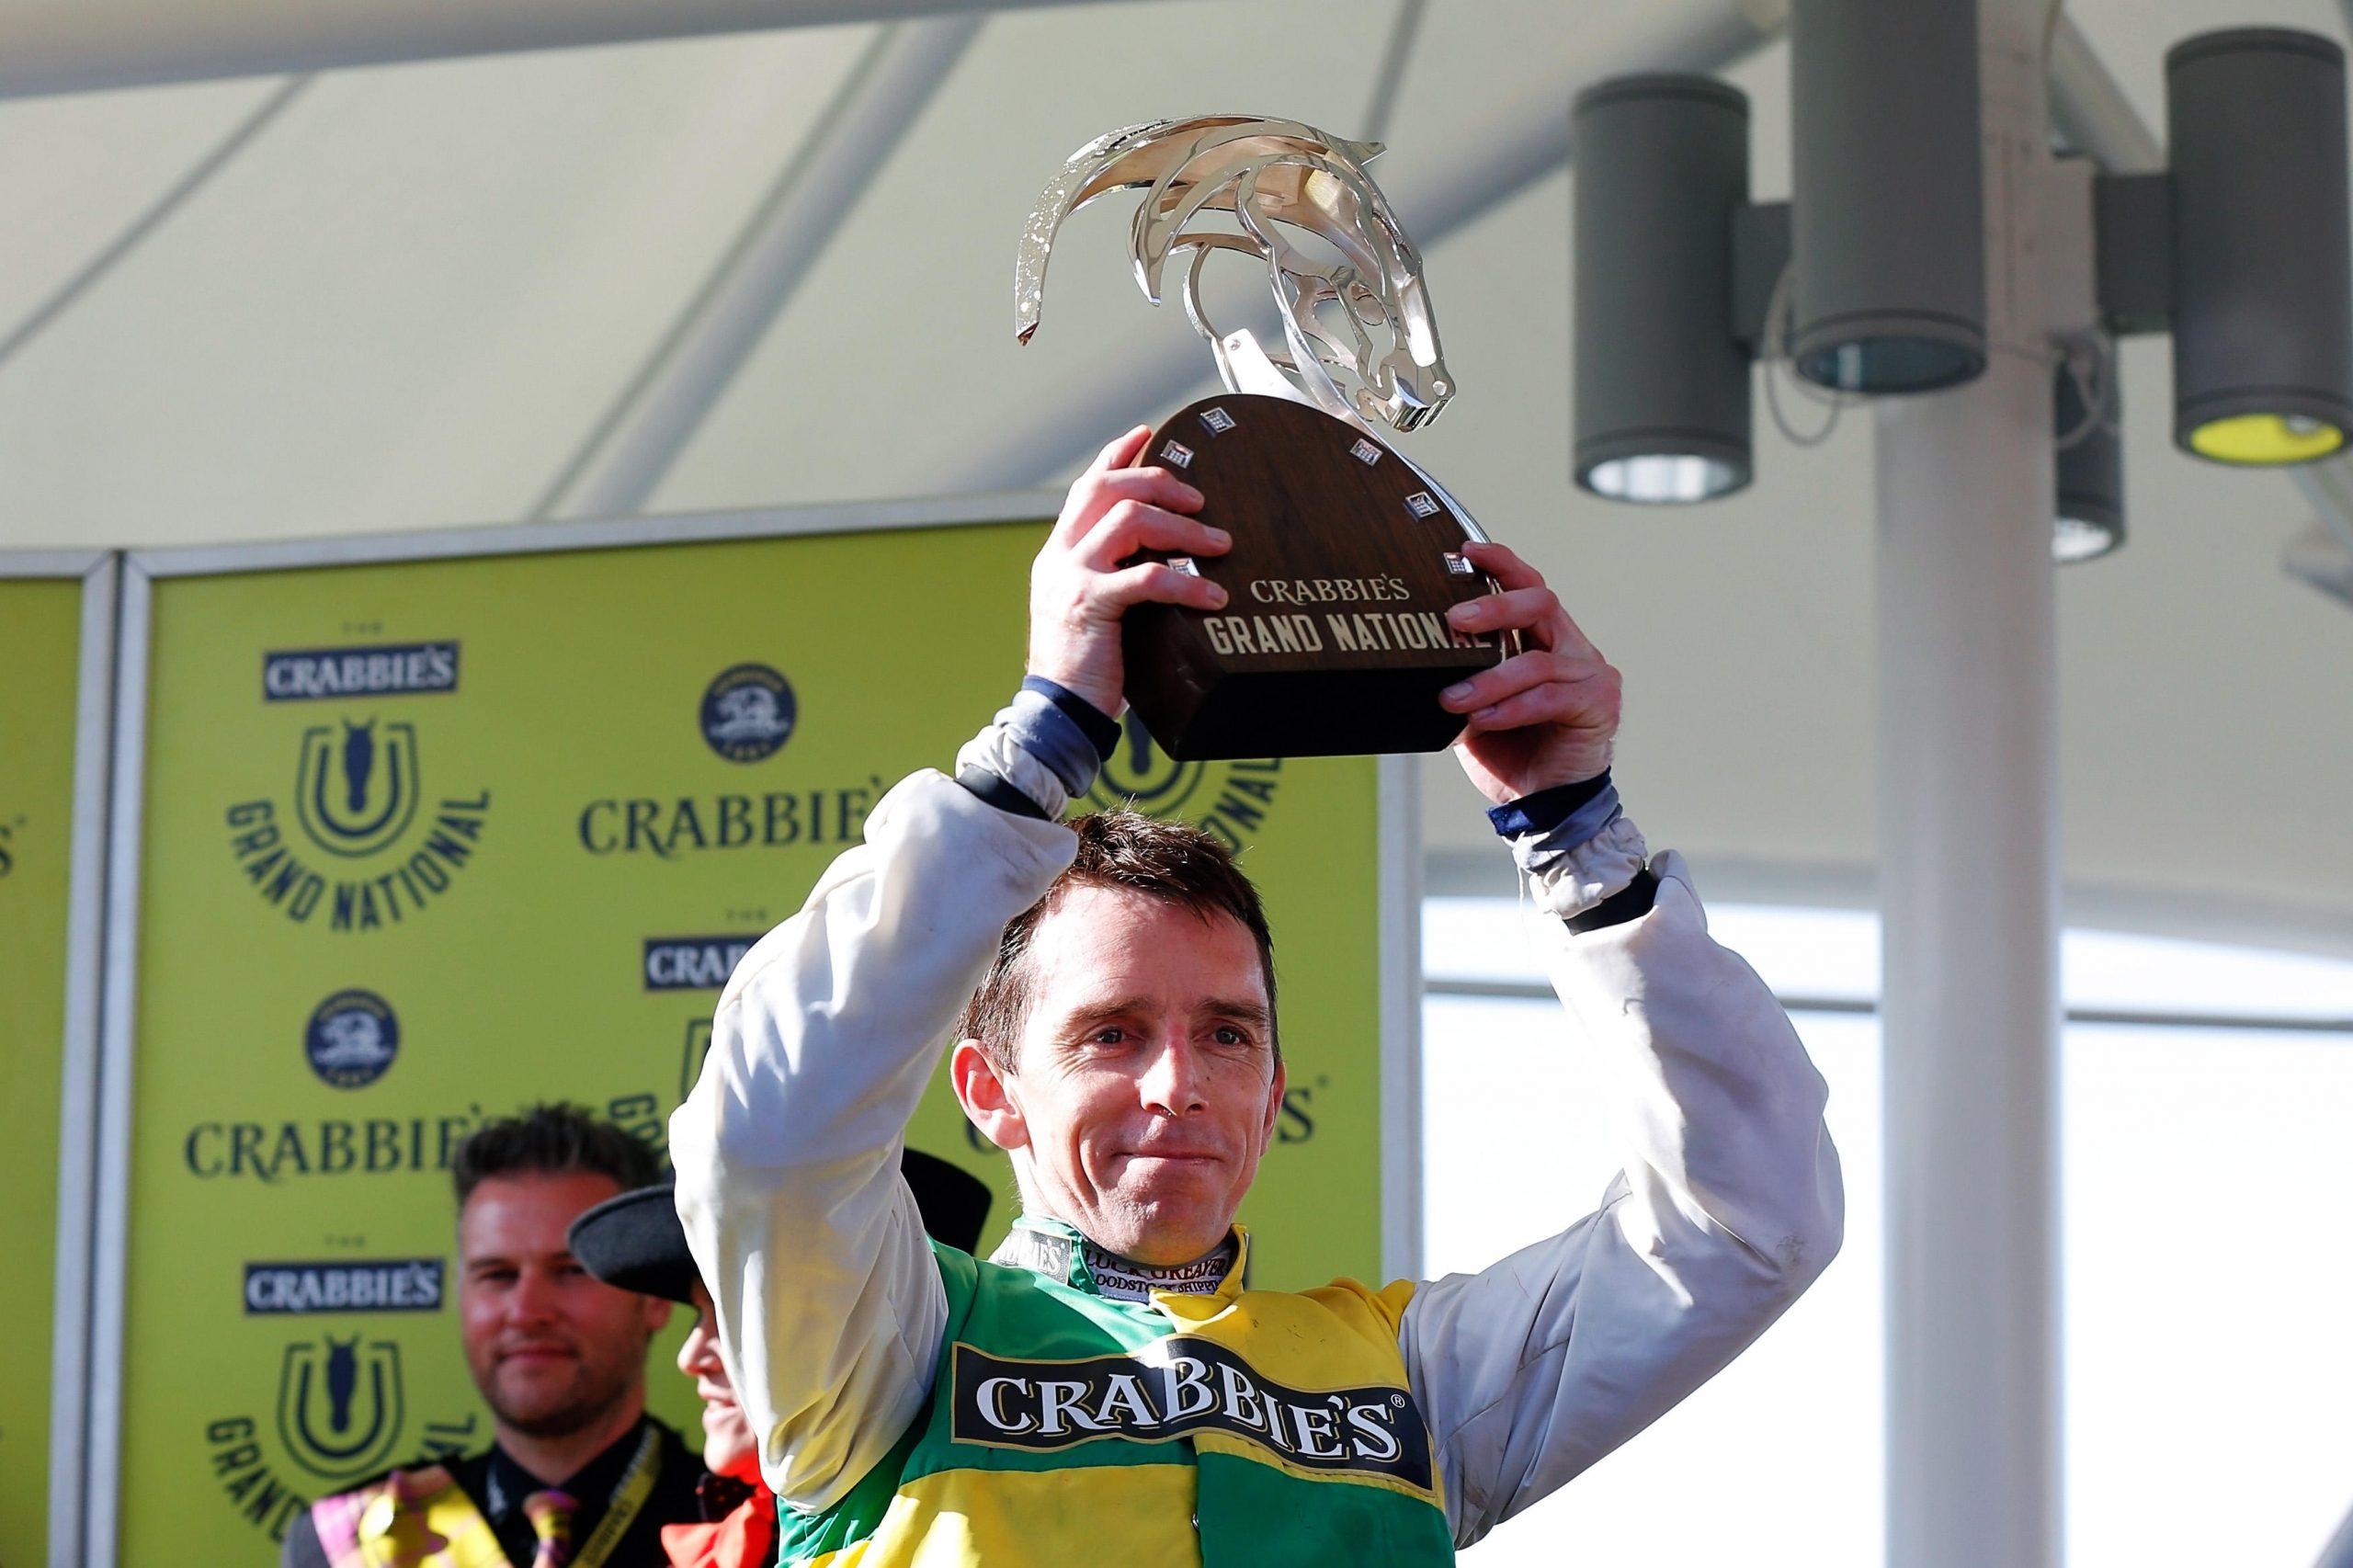 EKKDTD Aintree Racecourse, Liverpool, UK. 11th Apr, 2015. Crabbies Grand National. Winning jockey Leighton Aspell lifts the Grand National Trophy Credit: Action Plus Sports Images/Alamy Live News